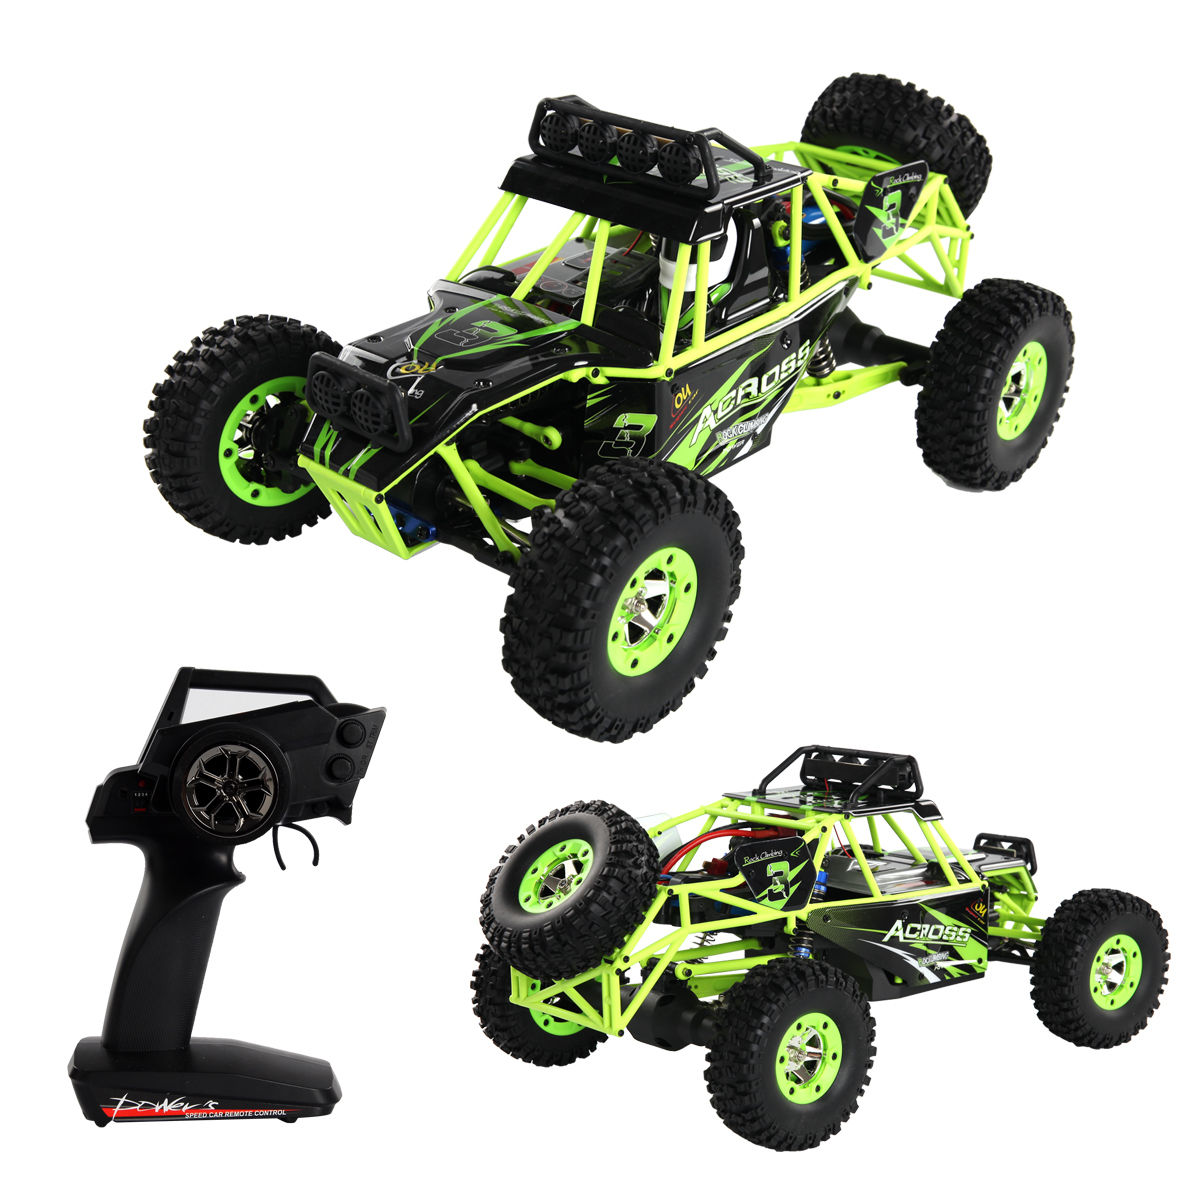 1:12 2.4G 4WD RC Off-Road Racing Car Radio Remote Control Rock Crawler Truck RTR TY563959